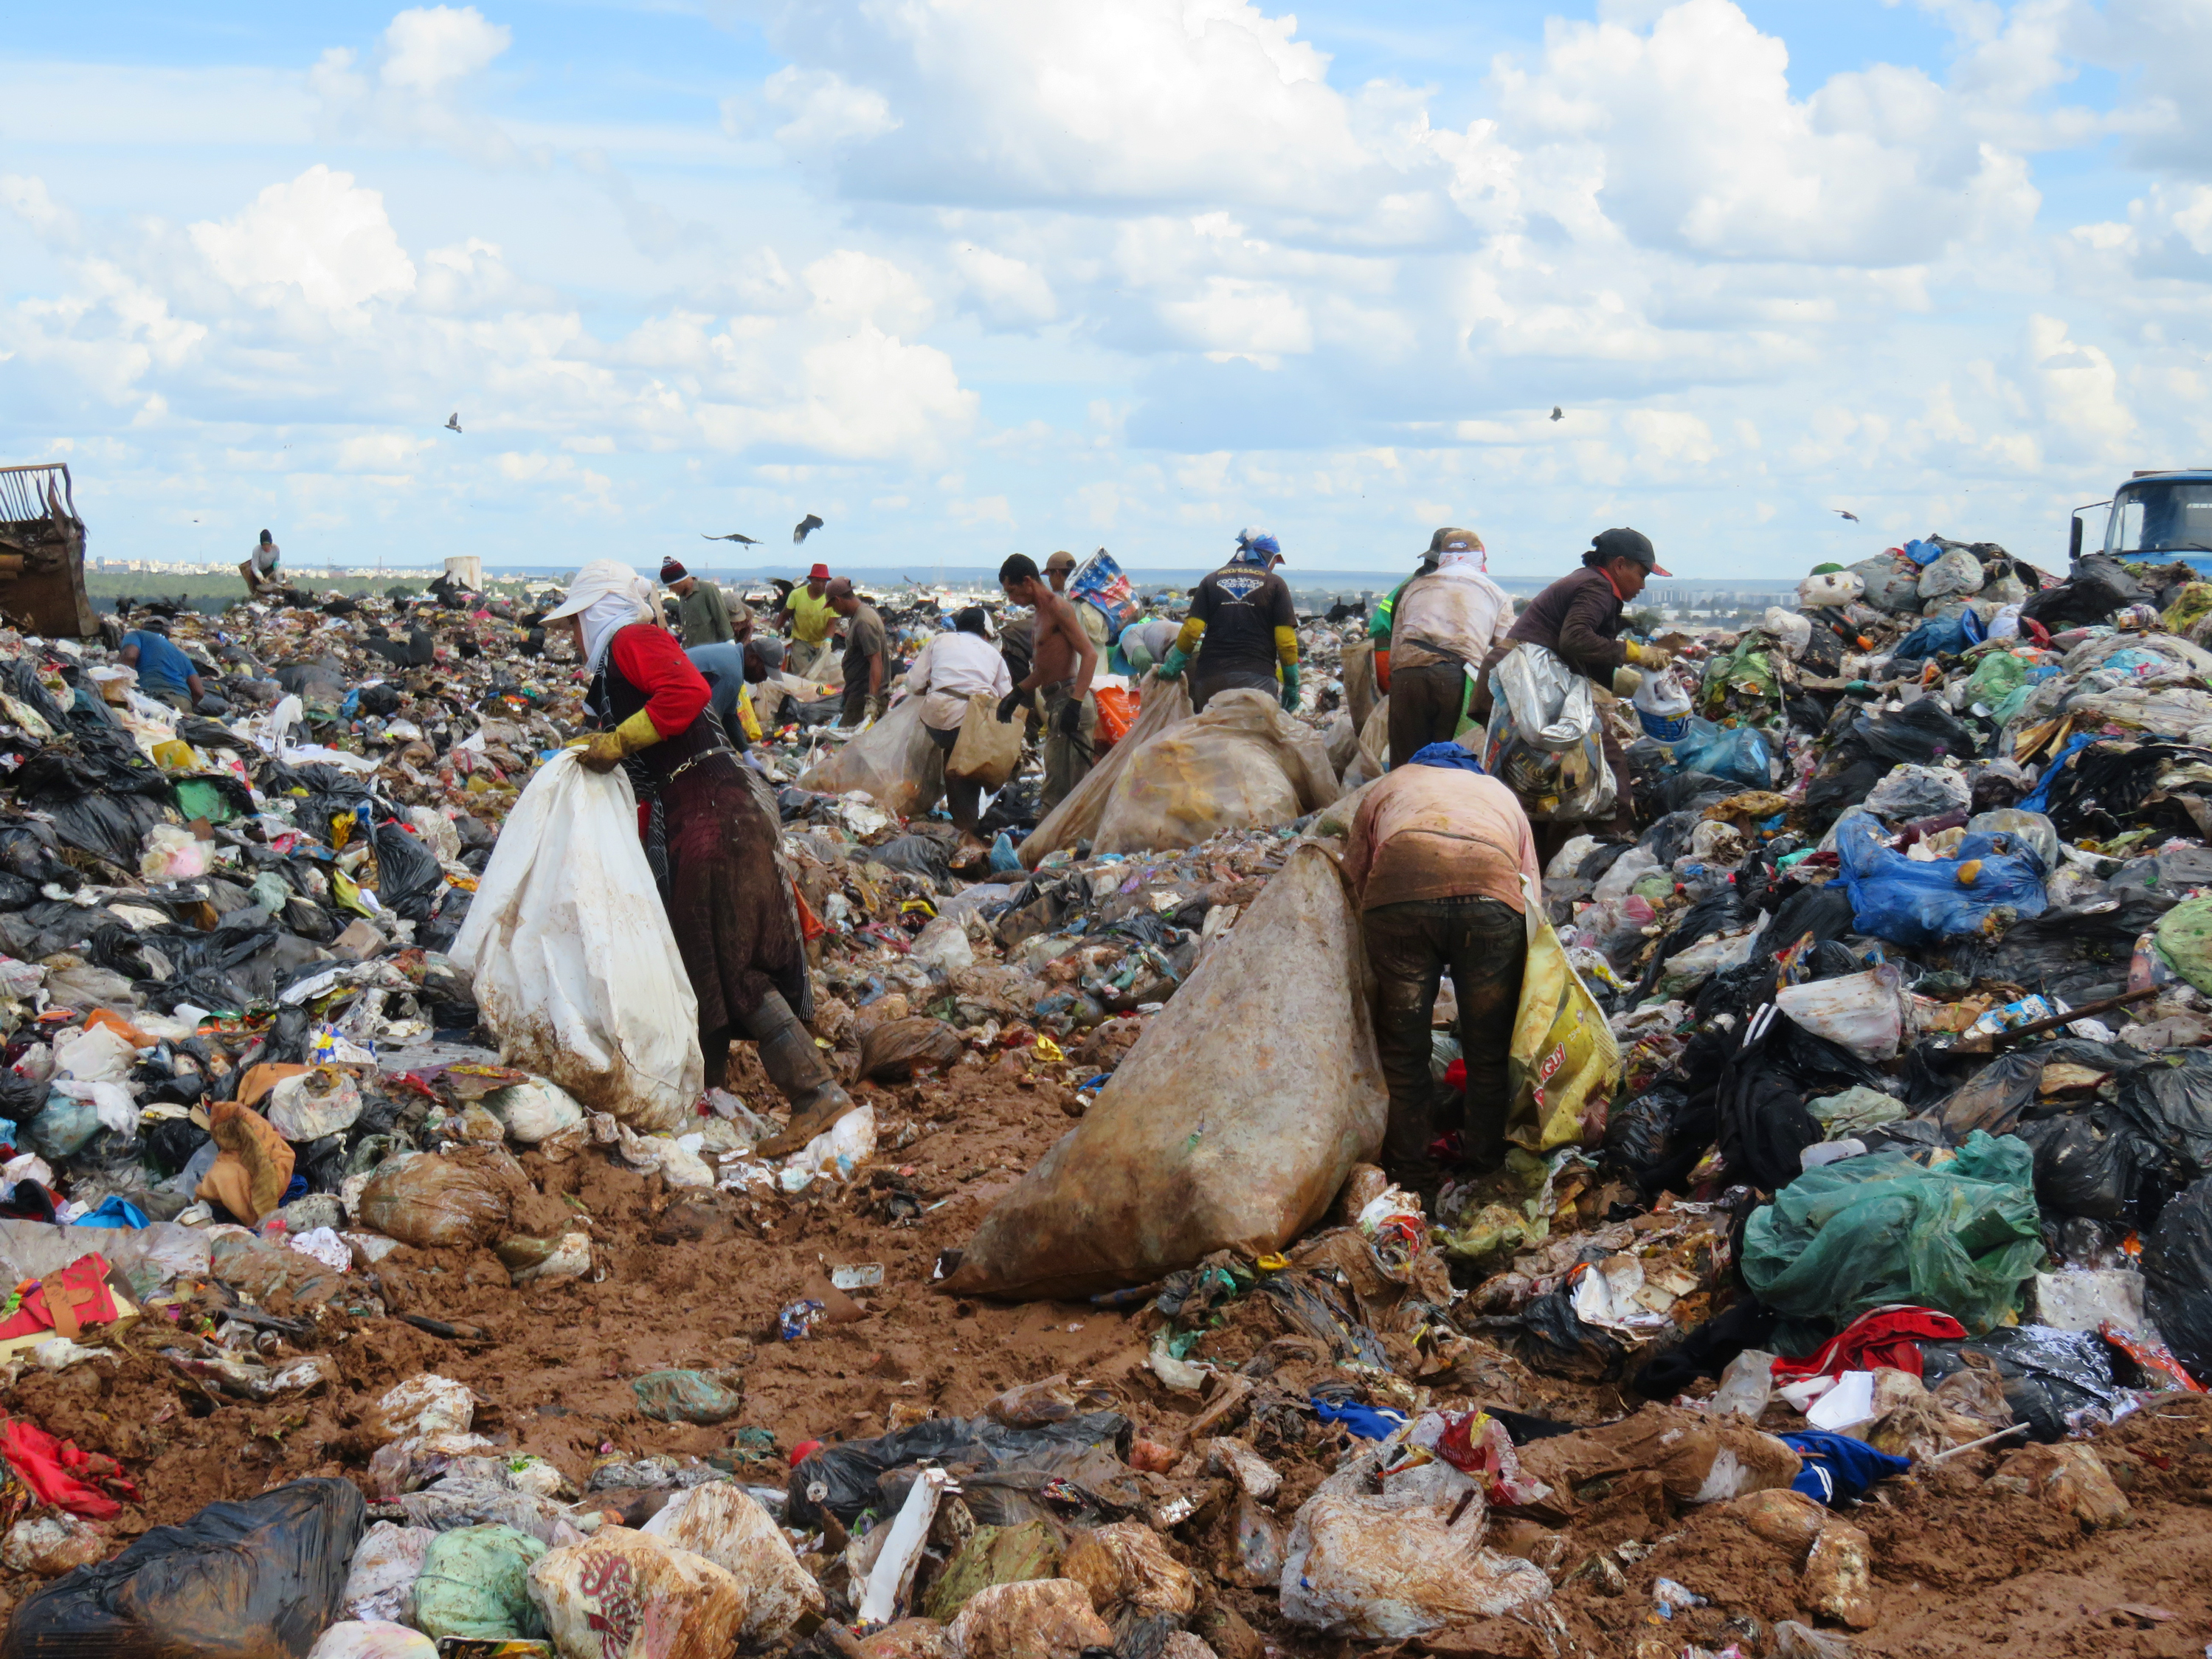 As A Massive Garbage Dump Closes In Brazil TrashPickers Face An - Brazil's tallahassee